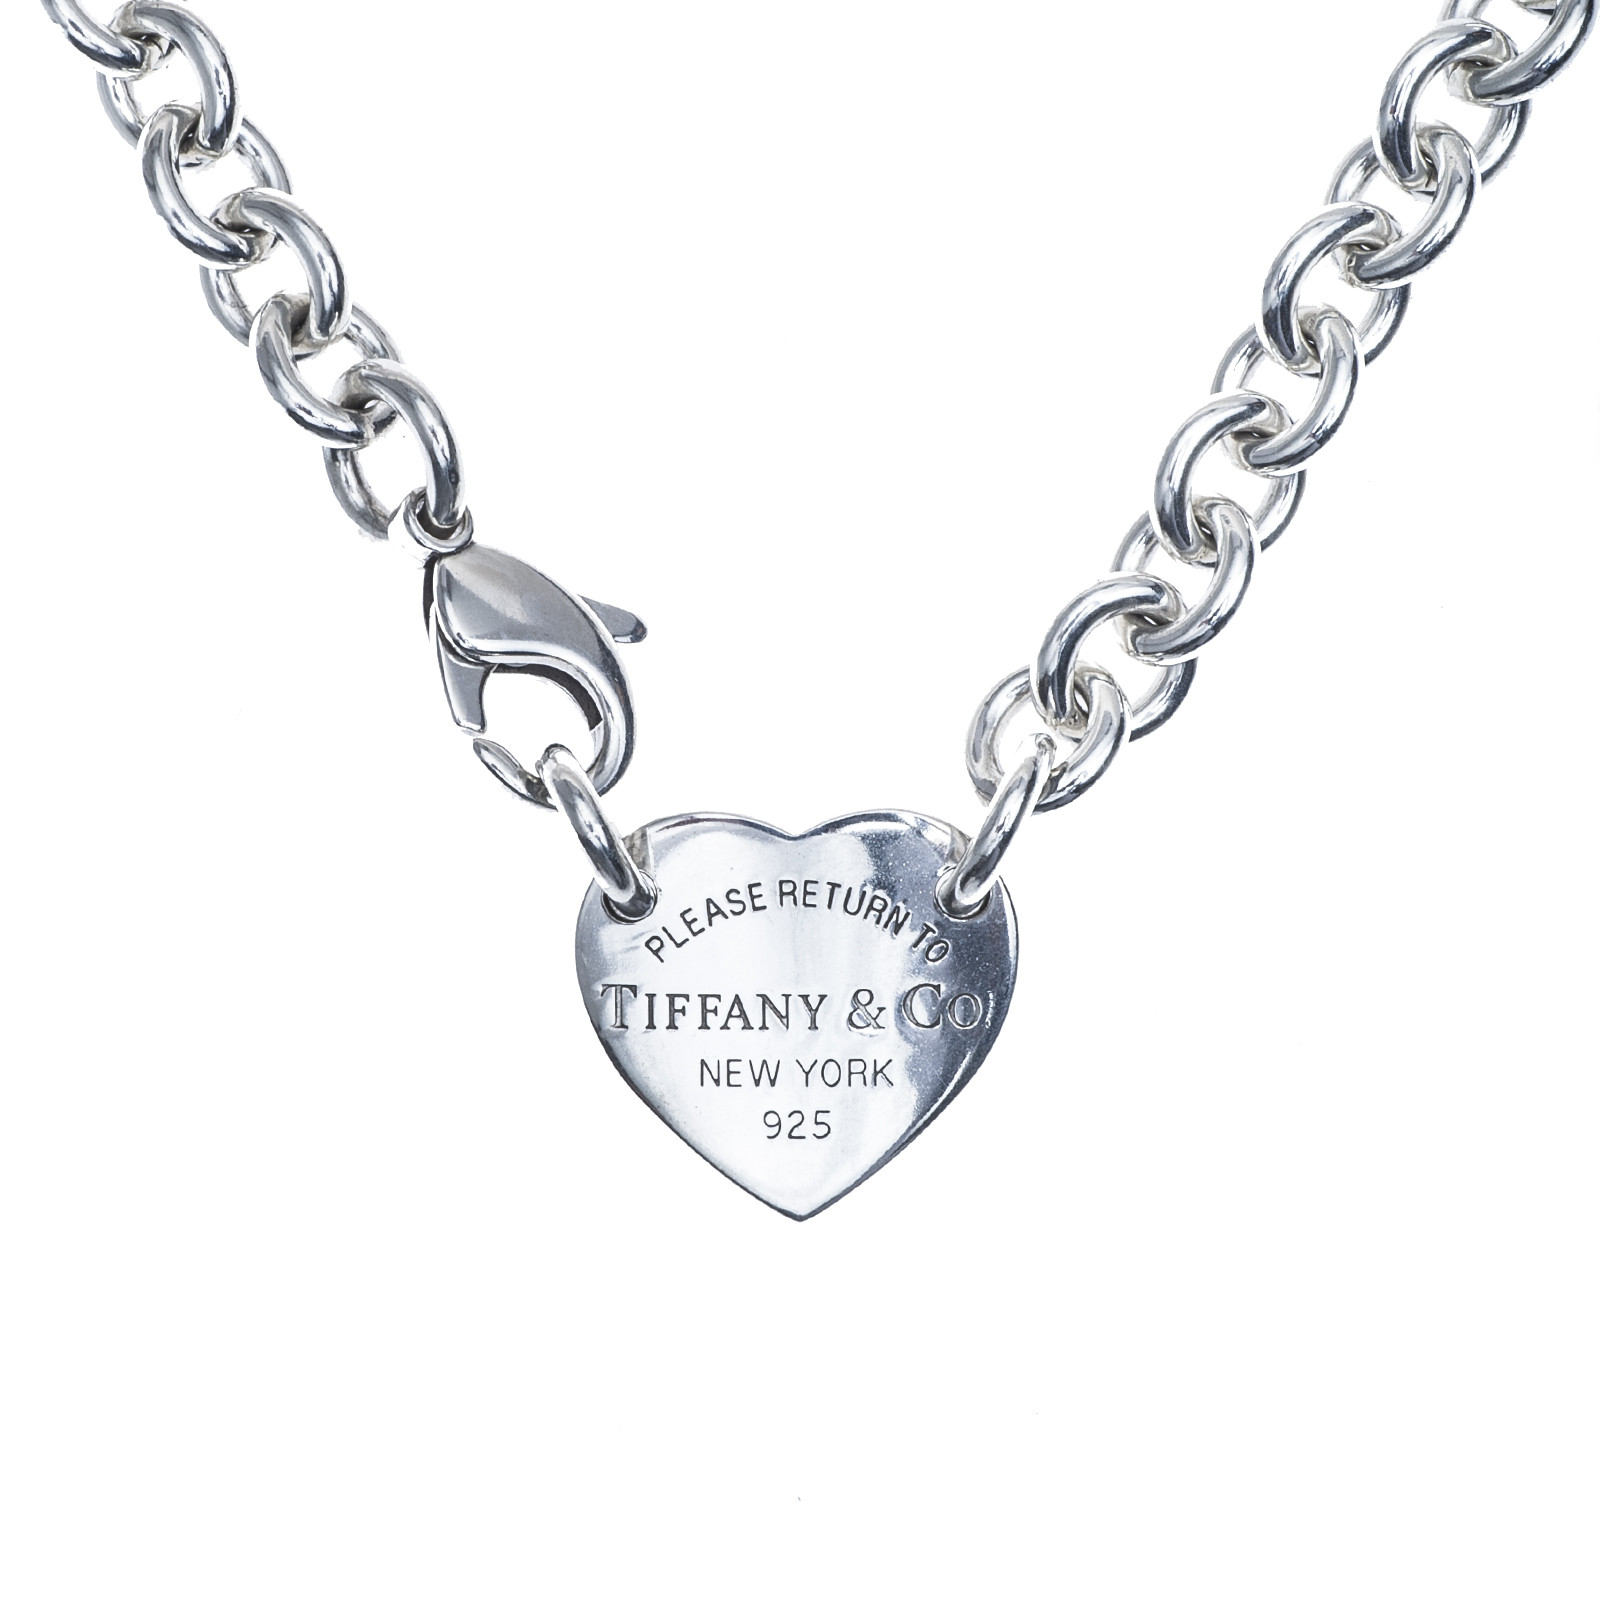 Vintage Tiffany & Co. Return to Tiffany Heart Tag Necklace